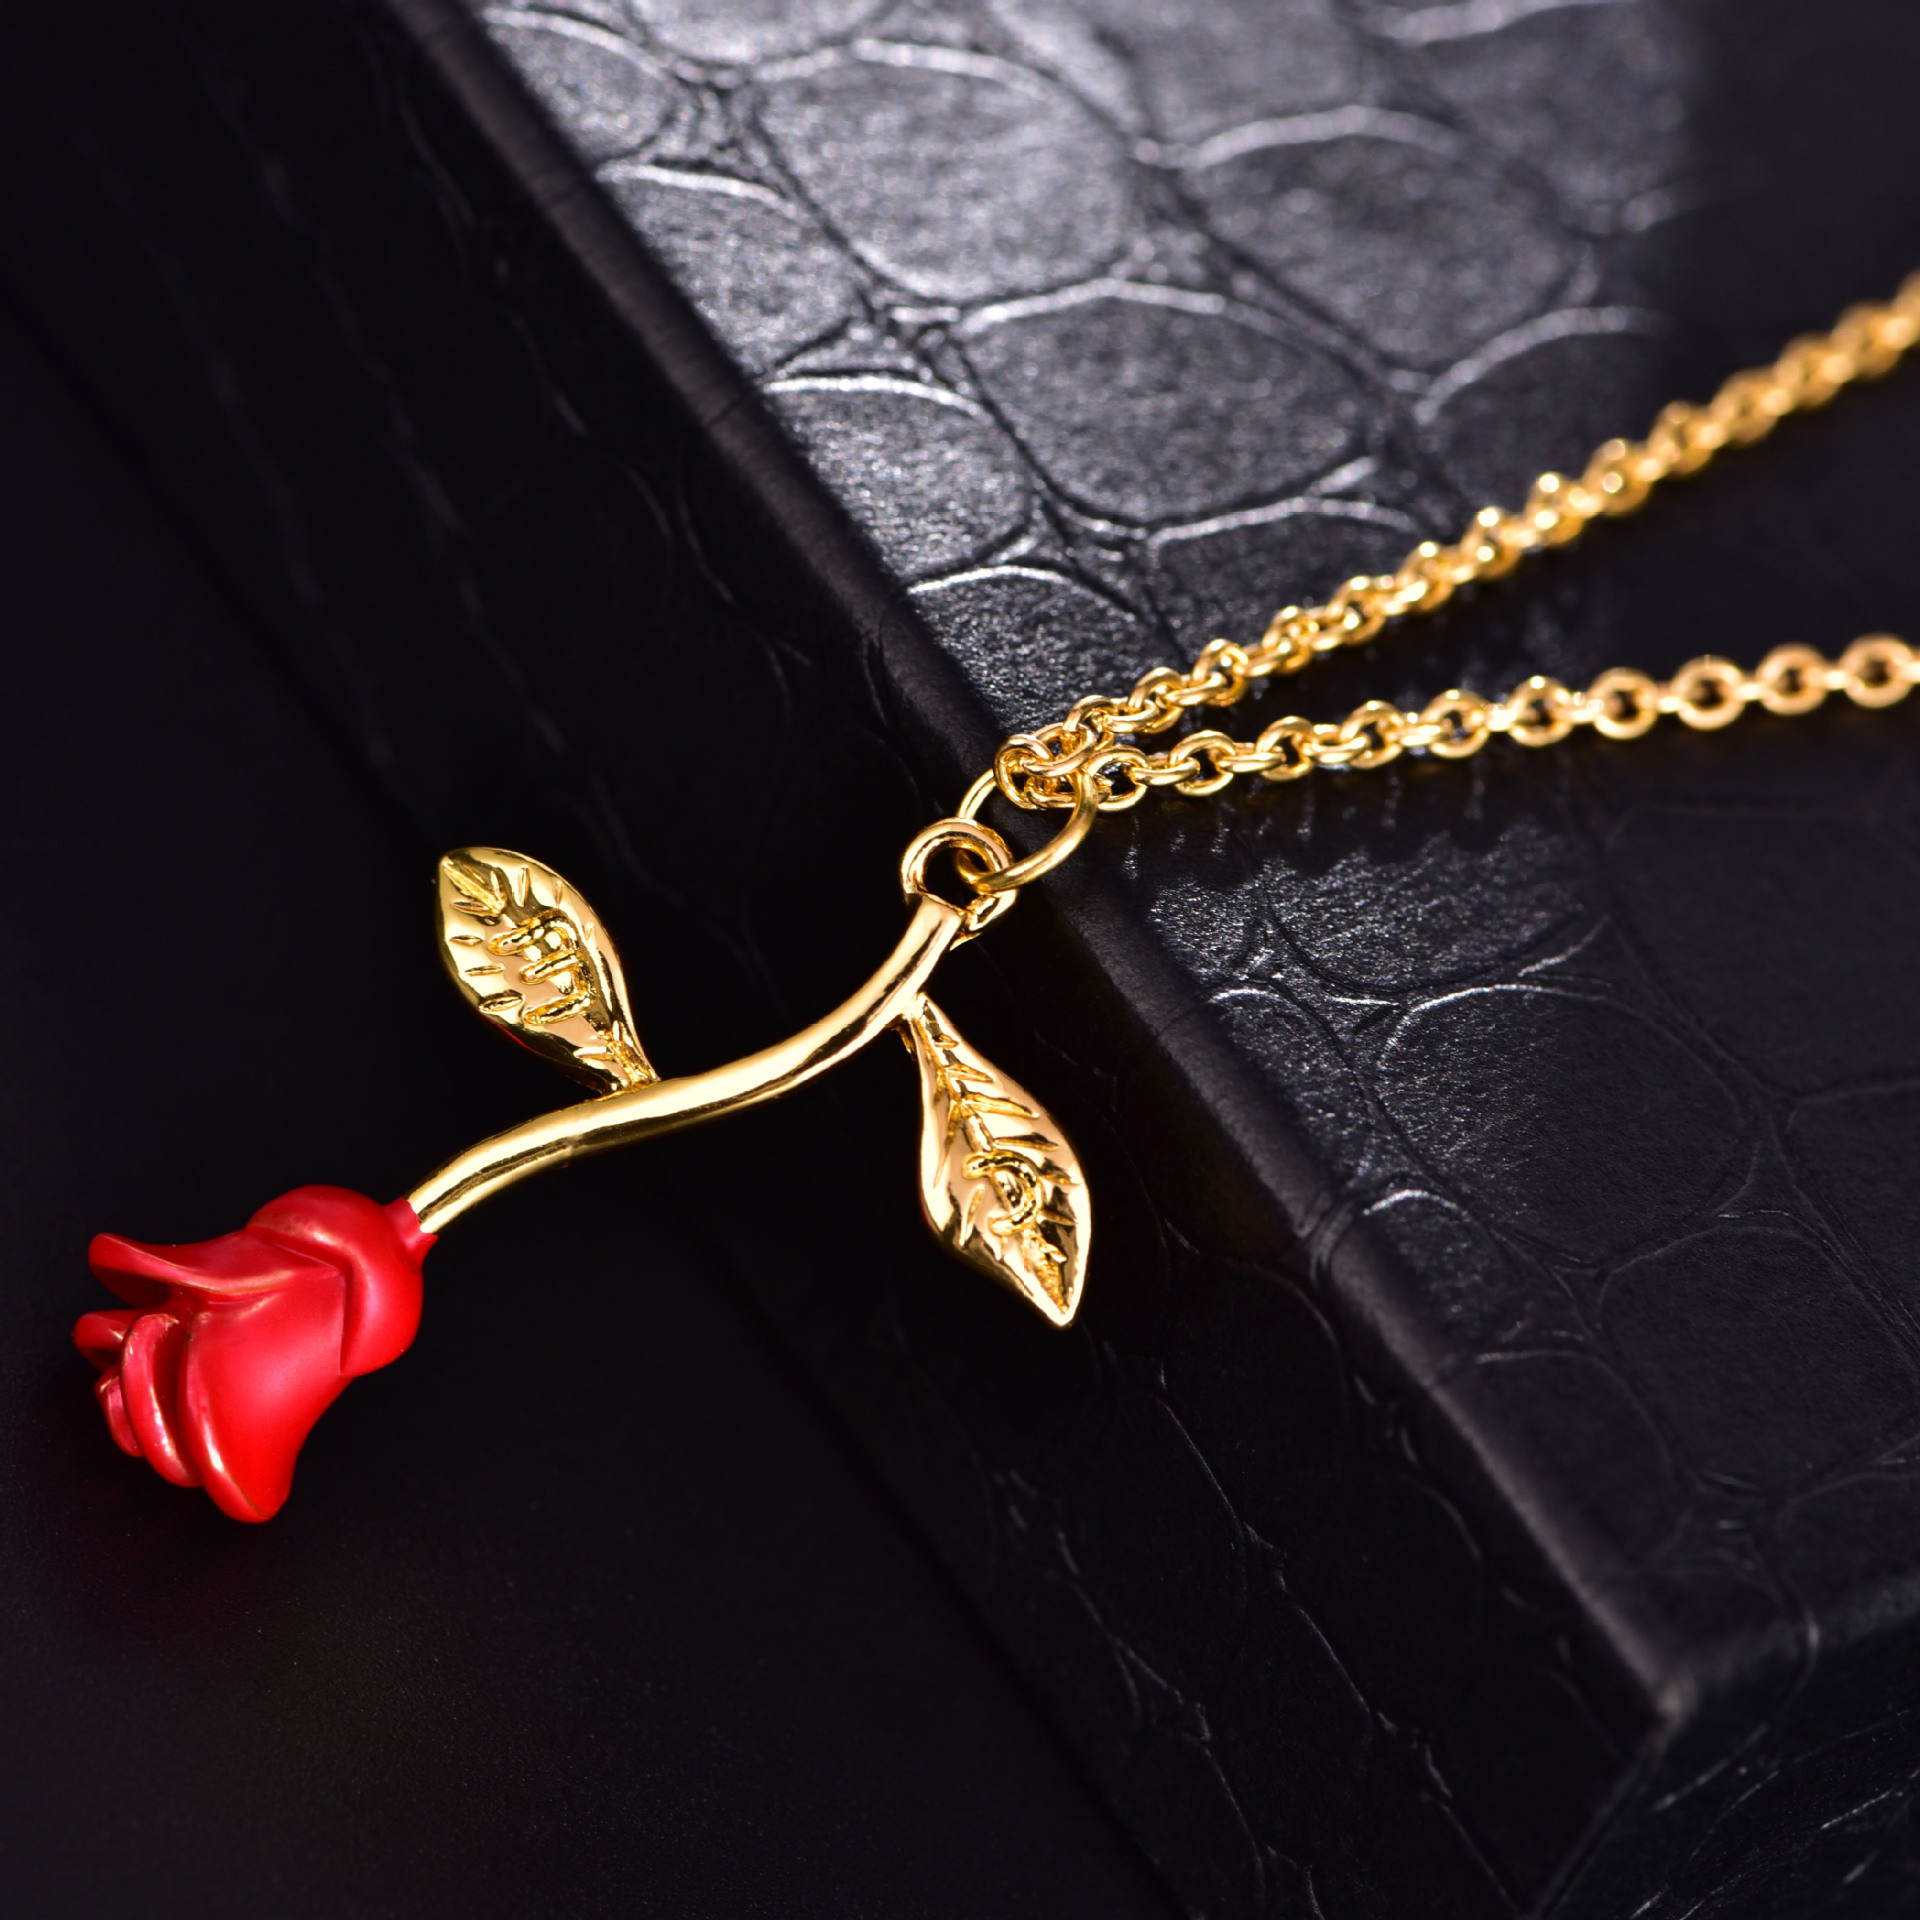 New Arrival Women Gift Jewelry 18 K Real Gold Plated Valtine's Day Gift Romantic Heart Rose Flower Pendant Necklace